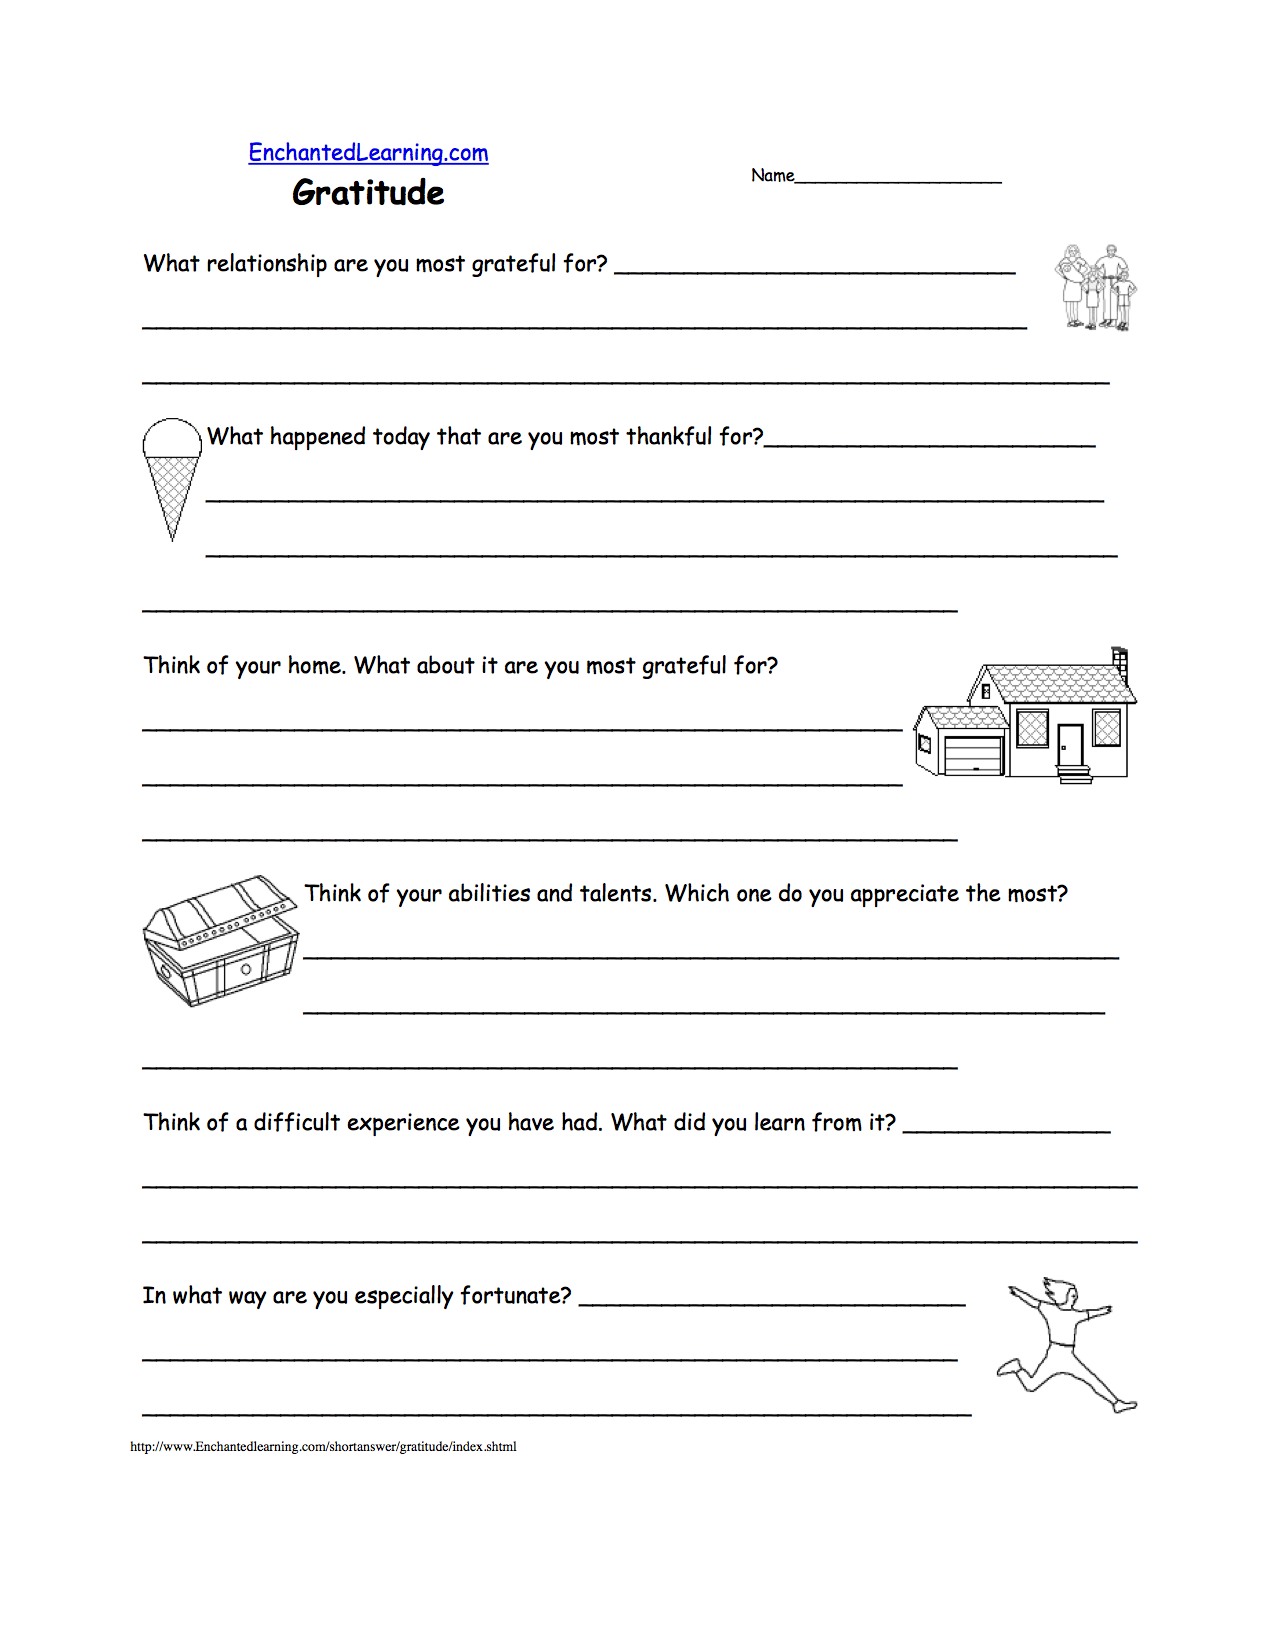 worksheet All About Me Worksheet For Adults short answer quizzes printable enchantedlearning com thanksgiving